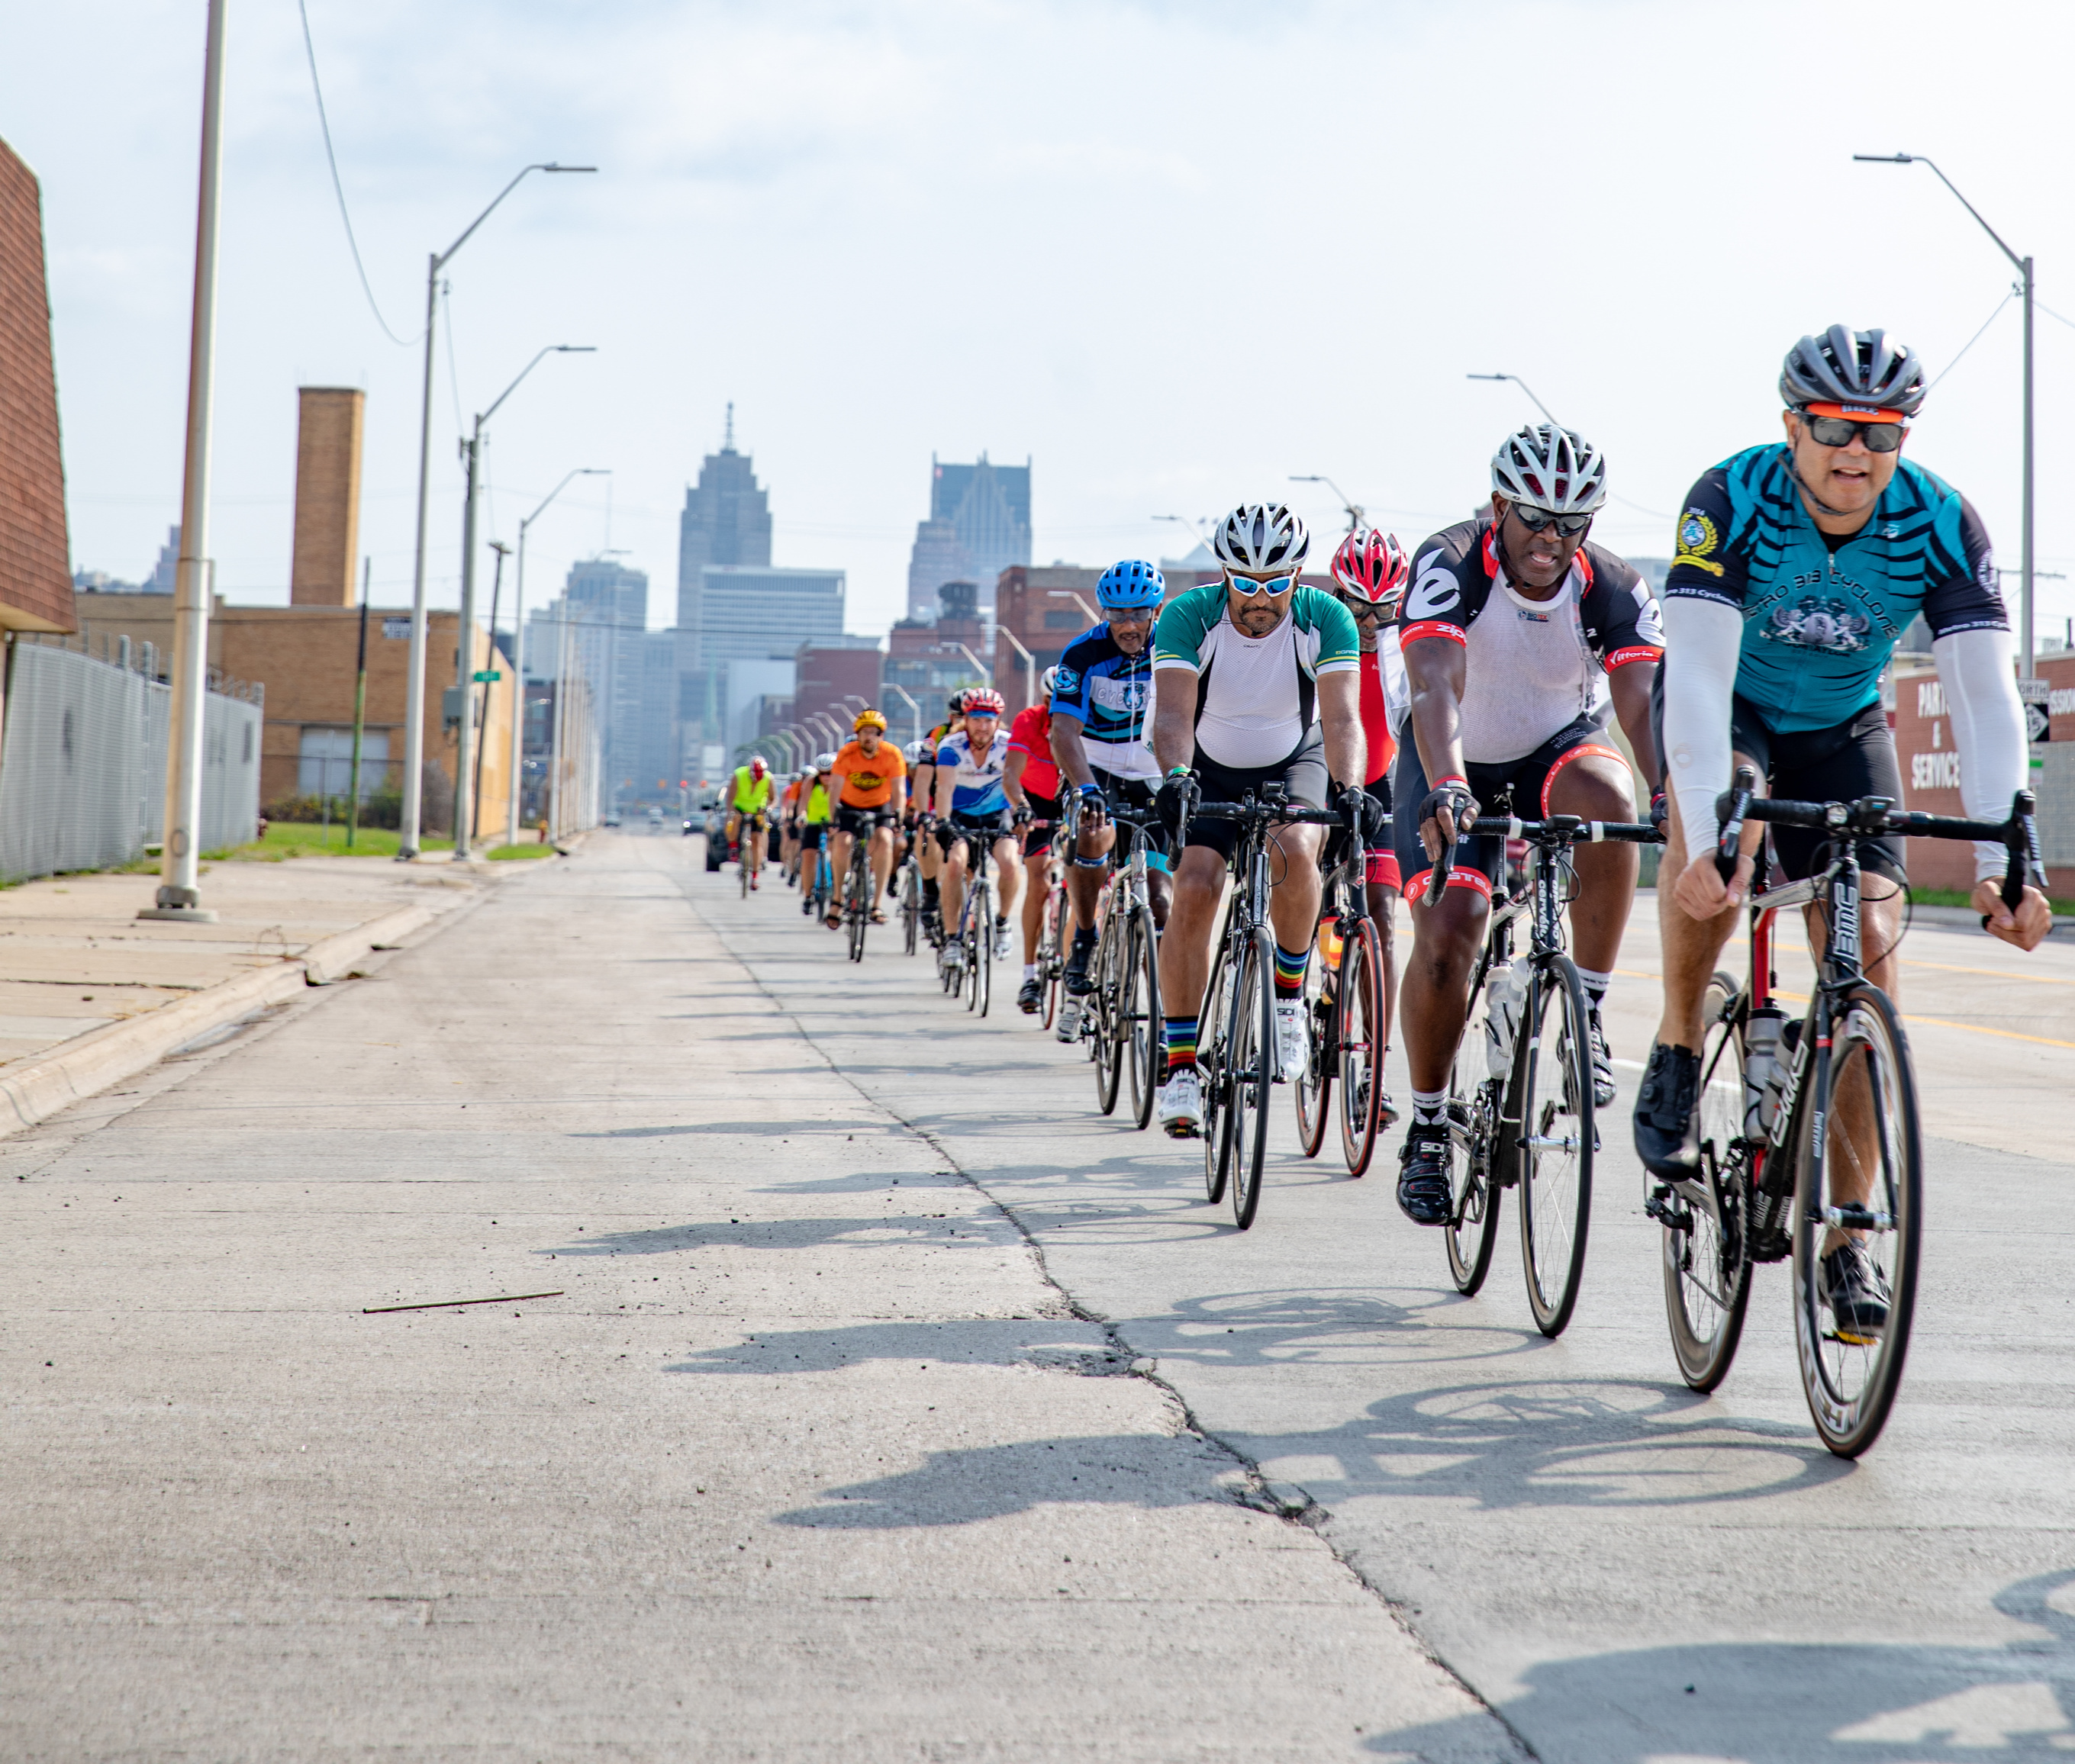 Cyclists ride through Detroit